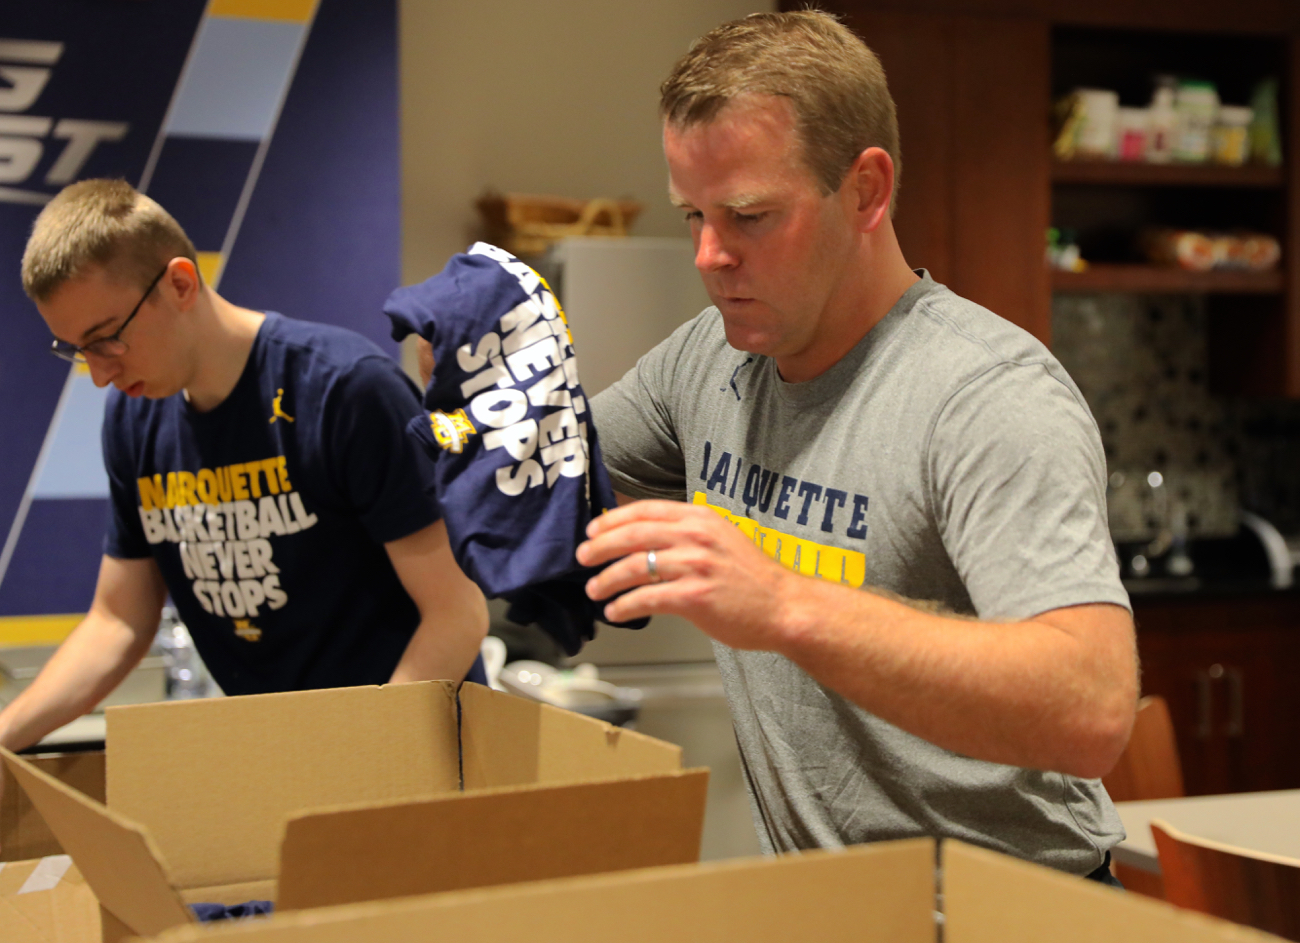 Cole+Bovard+a+sophomore+in+the+College+of+Arts+%26+Sciences+and+coach+Steve+Wojciechowski+send+supplies+to+victims+in+Houston.+%0A%0APhoto+courtesy+of+Marquette+Athletics+